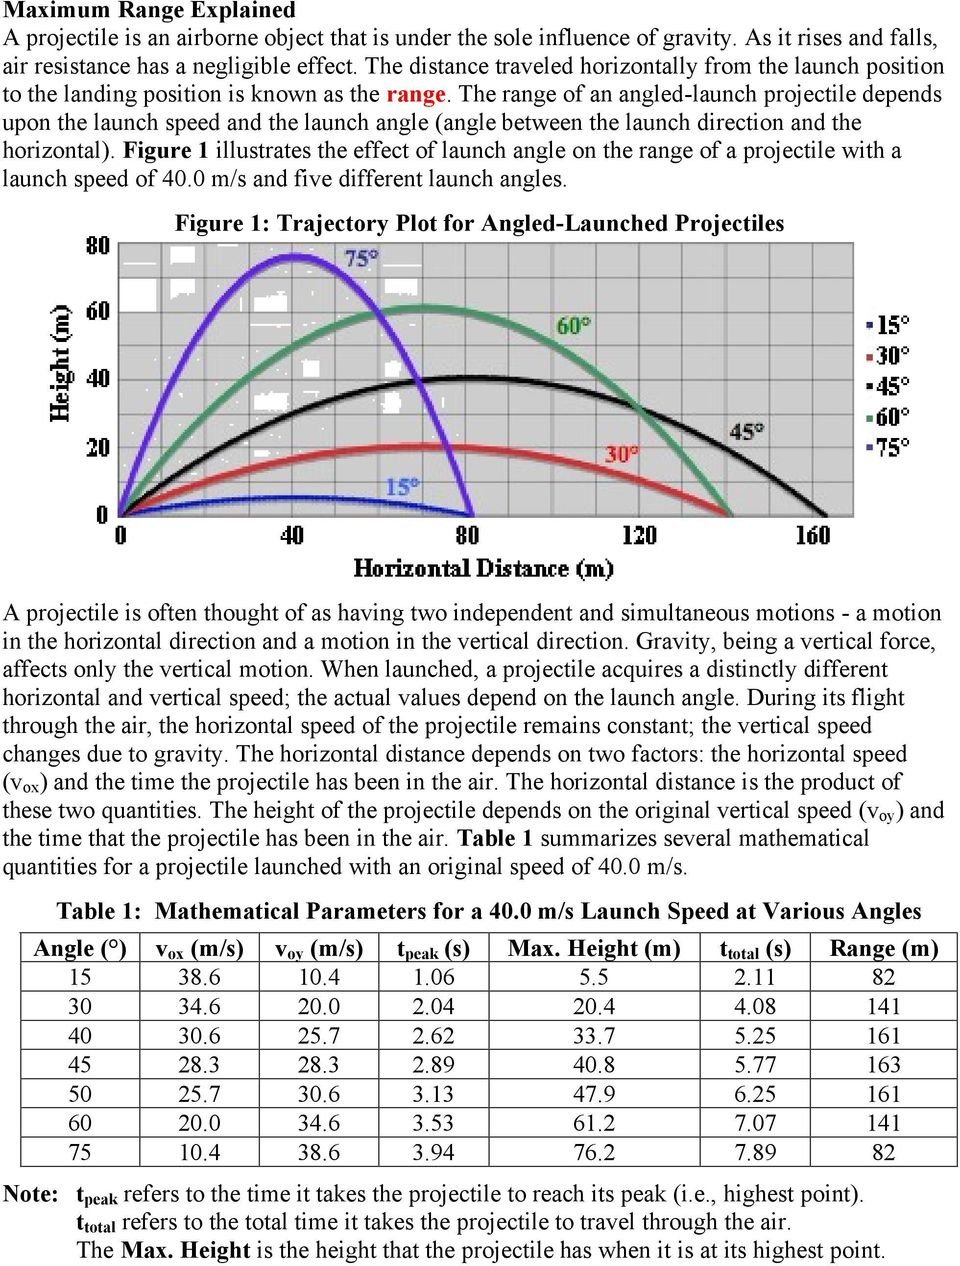 The range of an angled-launch projectile depends upon the launch speed and the launch angle (angle between the launch direction and the horizontal).